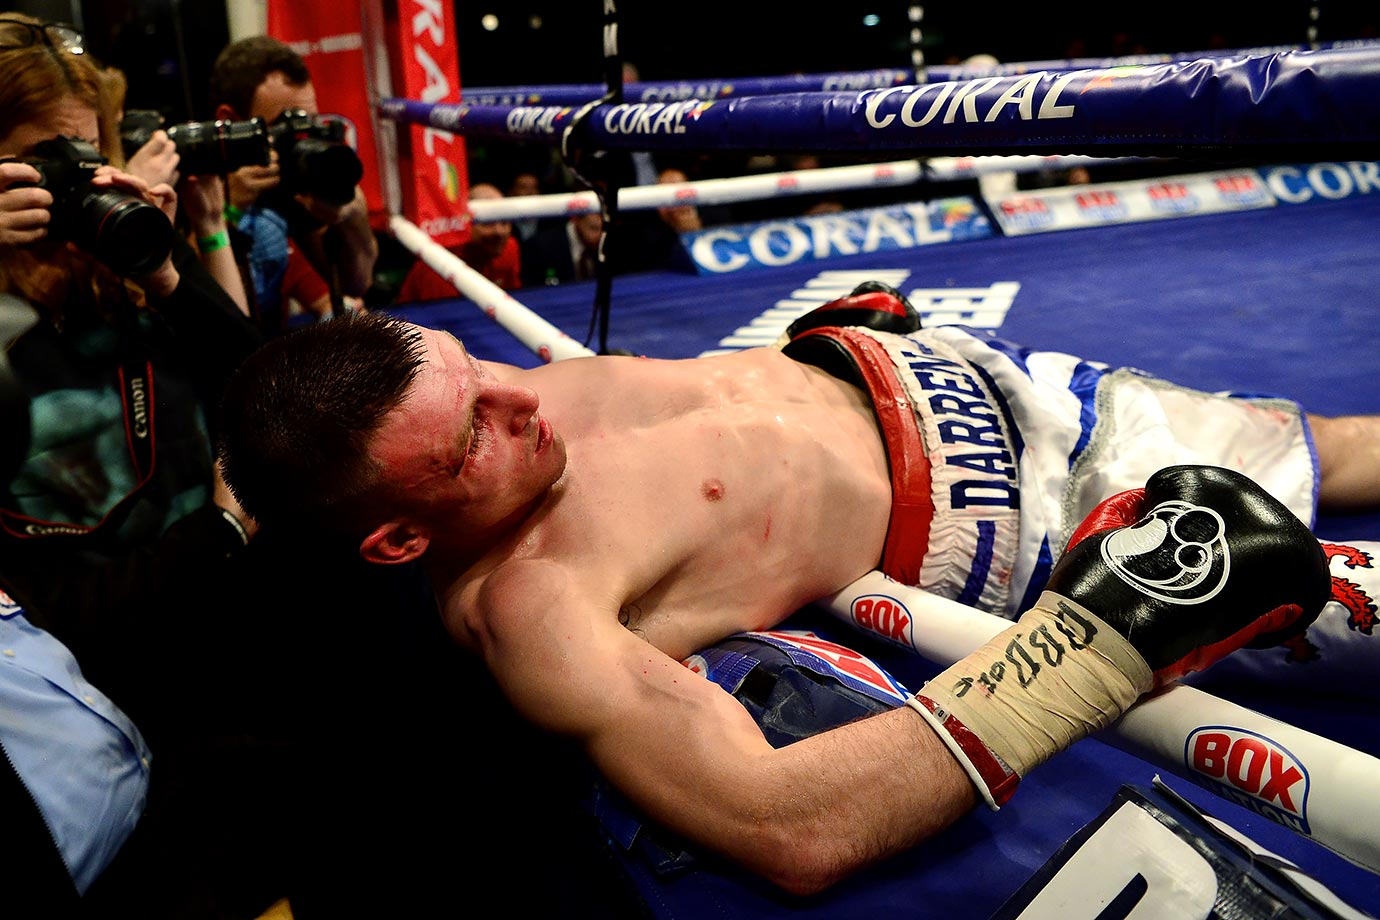 Darren Traynor is knocked through the ropes by Ryan Walsh during their British featherweight title bout at York Hall in London.